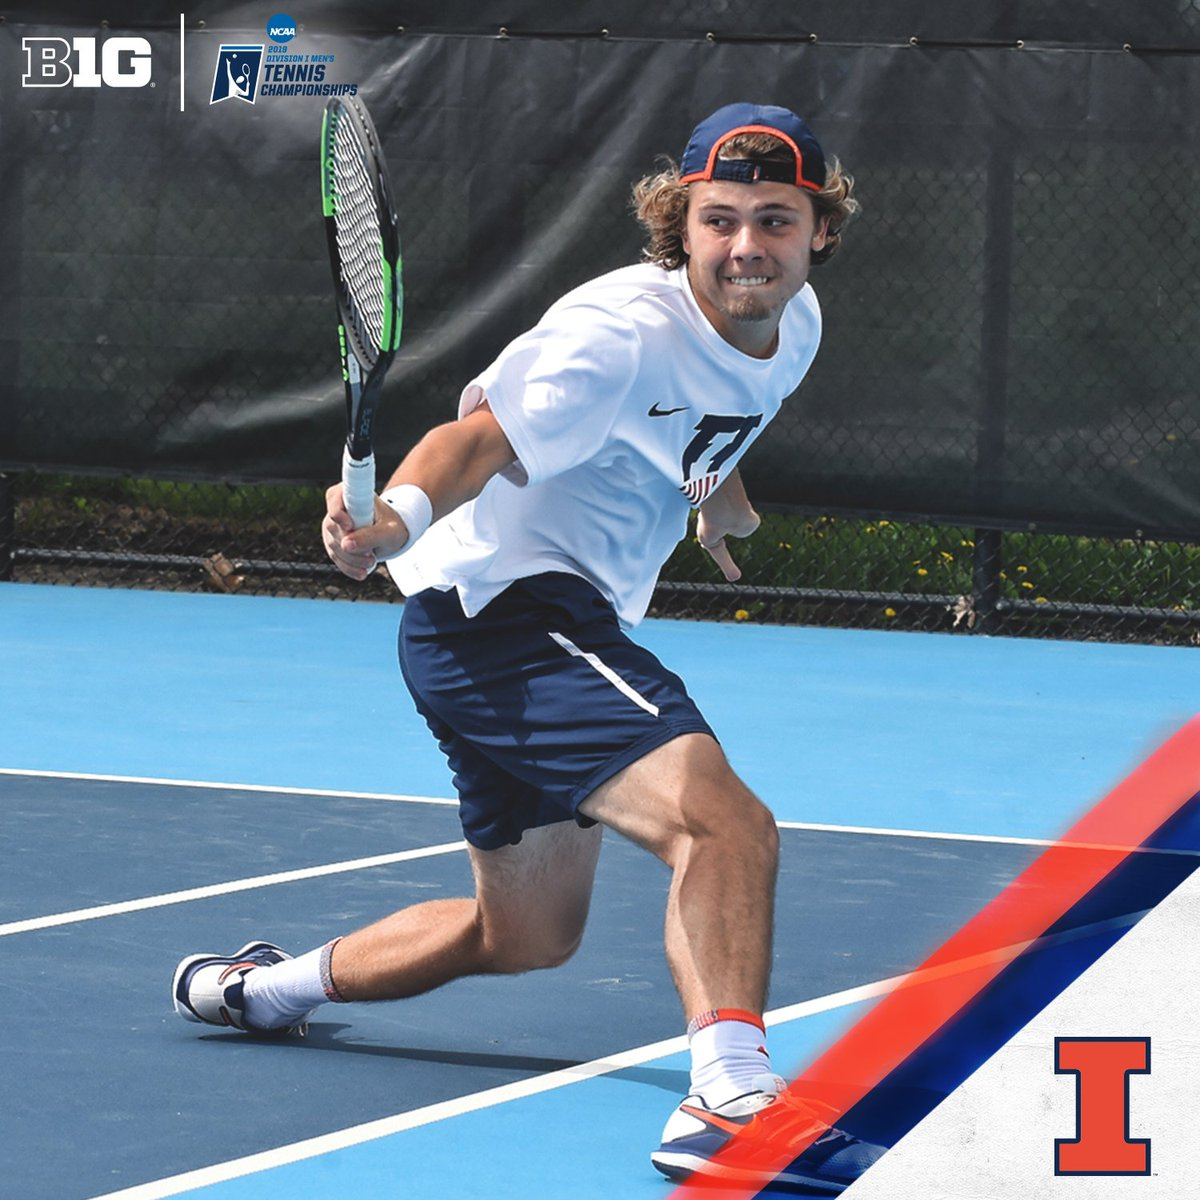 Following a three-set victory Thursday night, Aleksander Kovacevic is the third @IlliniMTennis student to advance to the @NCAATennis Tournament semifinals in program history. #B1GMTennis